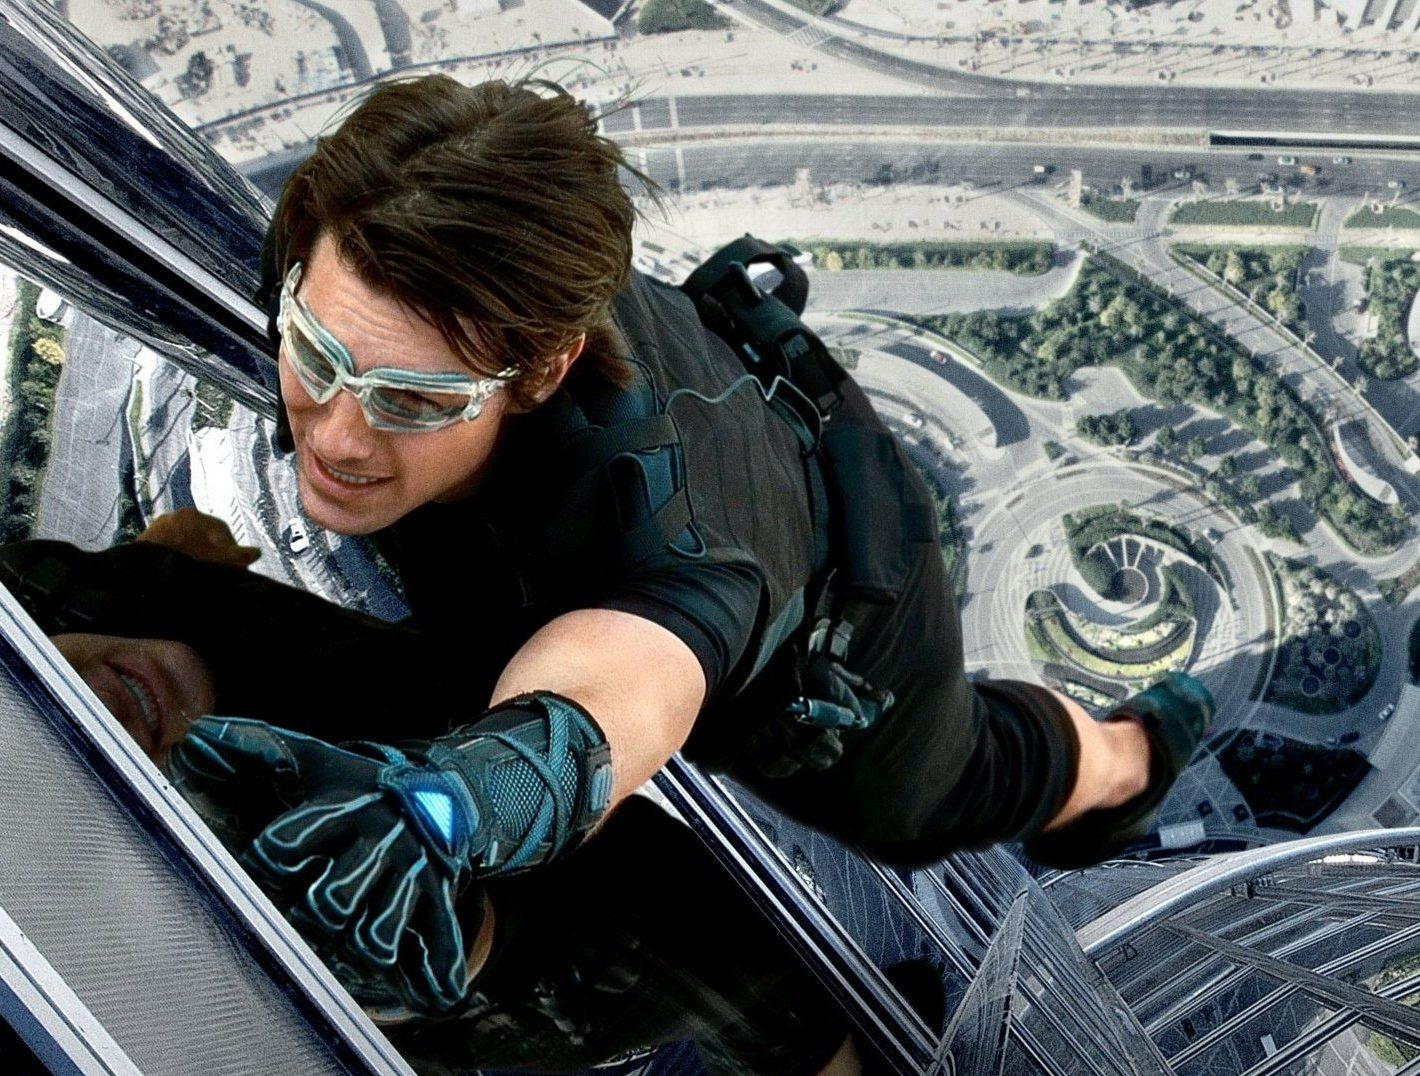 mission impossible ghost protocol 1532623826 e1610701861627 20 Things You Probably Didn't Know About The 1983 Film The Outsiders